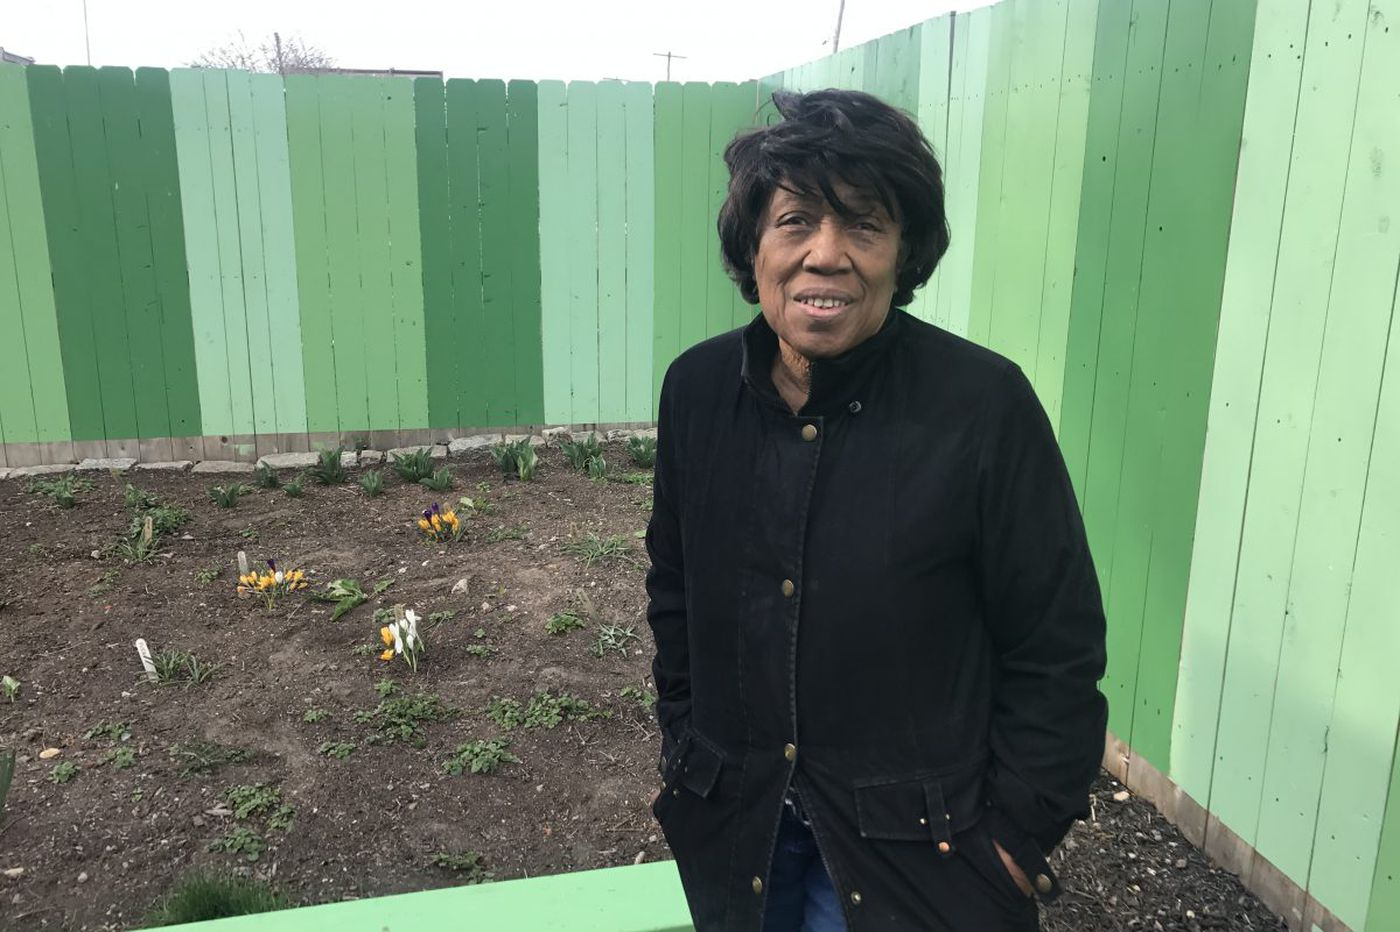 Philly's urban gardeners deserve a thank you, not an eviction notice | Editorial